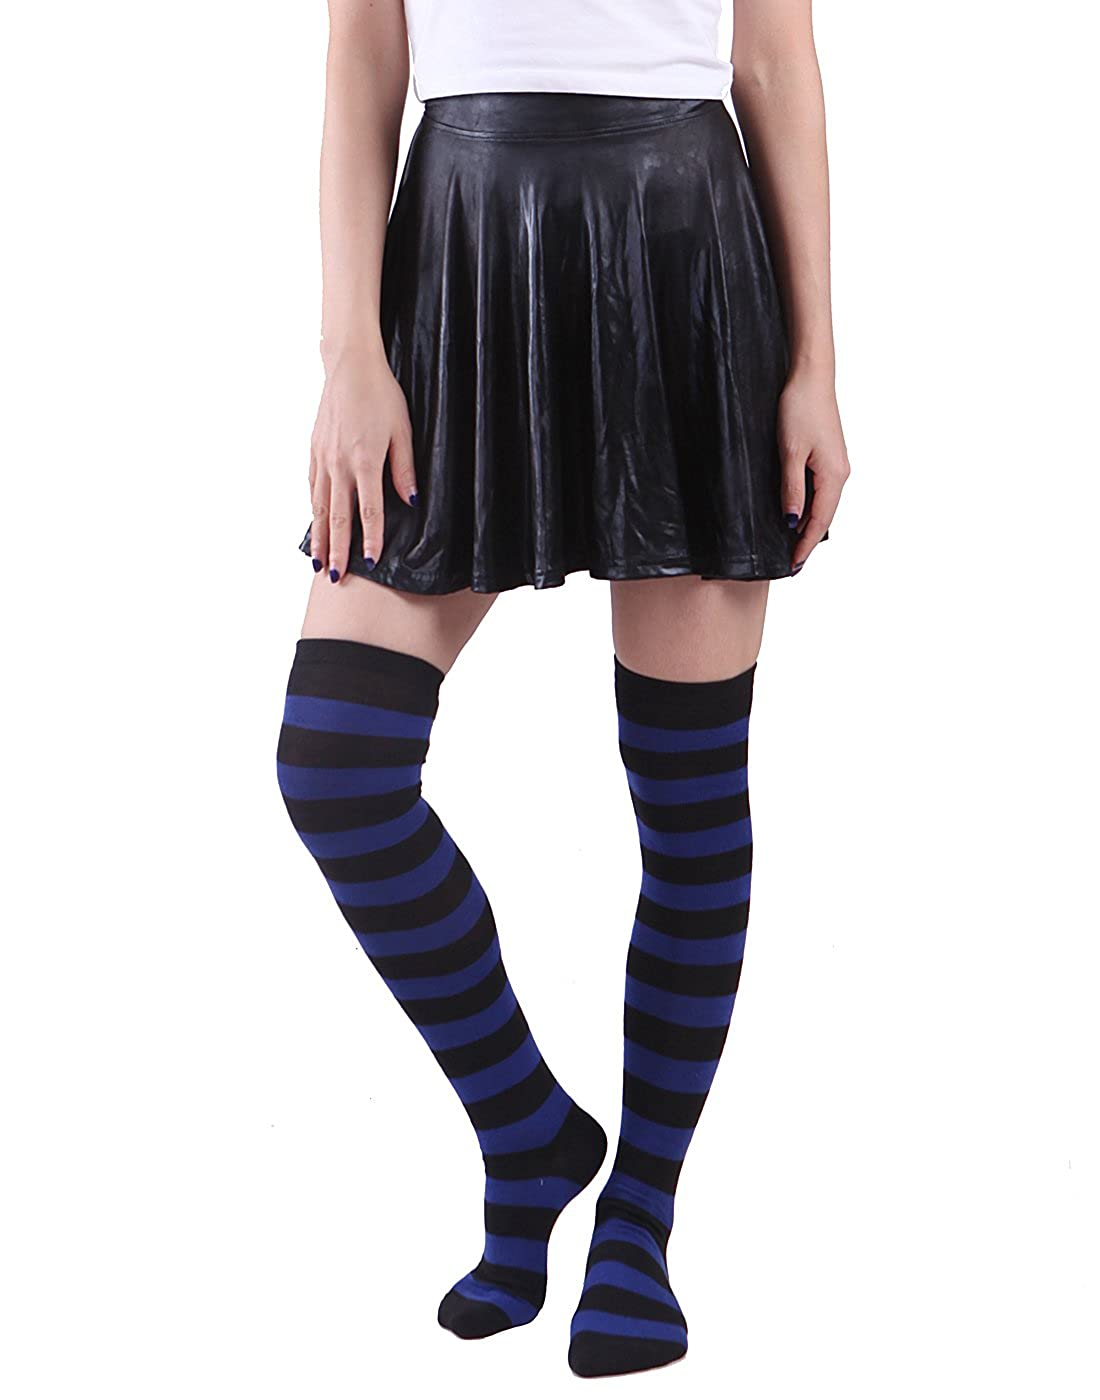 HDE Womens Opaque Solid and Striped Thigh High Stockings Socks